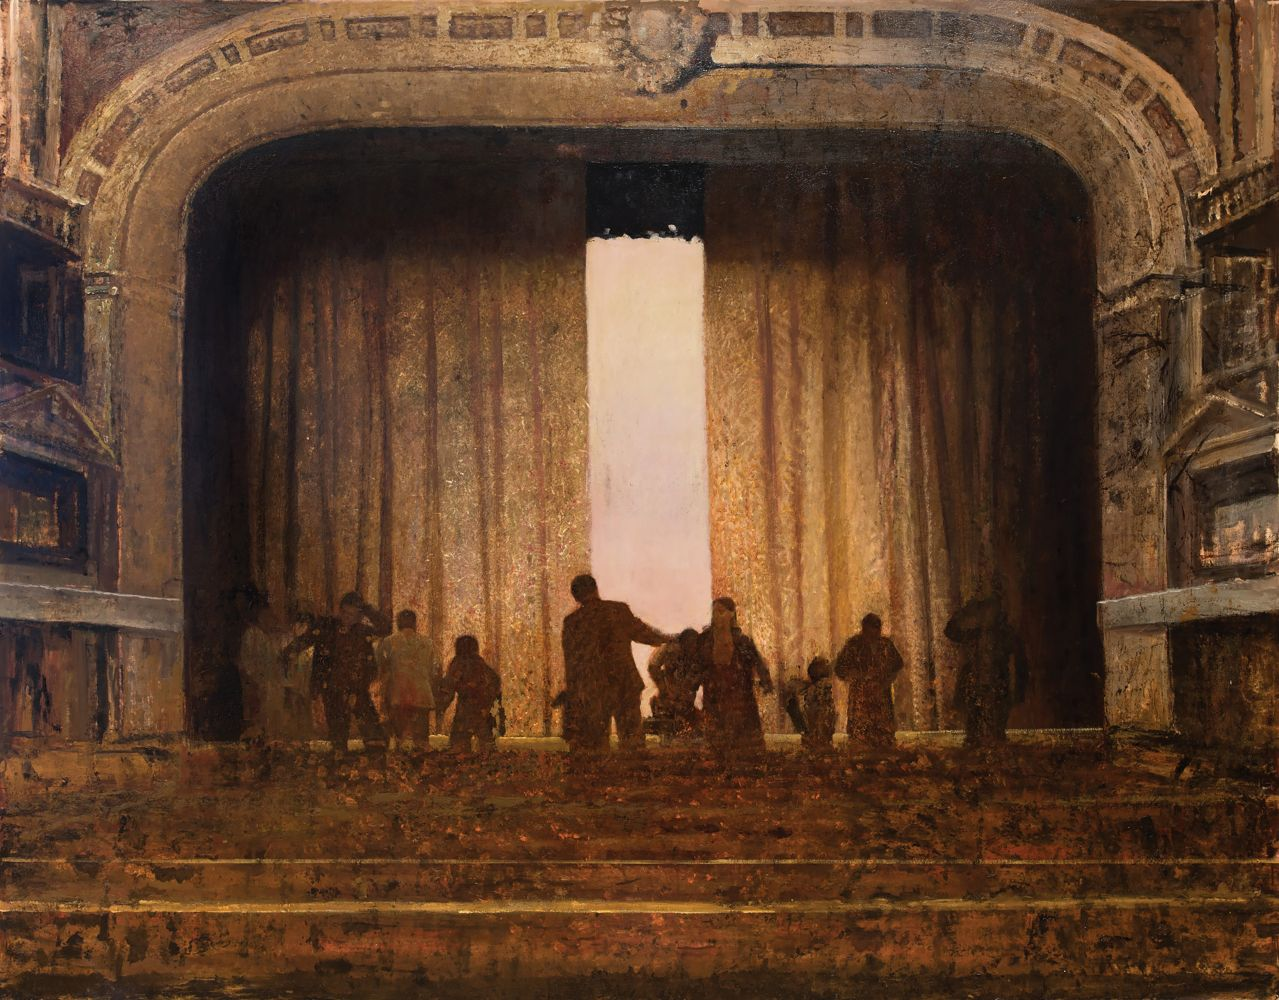 Oil painting of shadowy figures dancing on the theater stage.